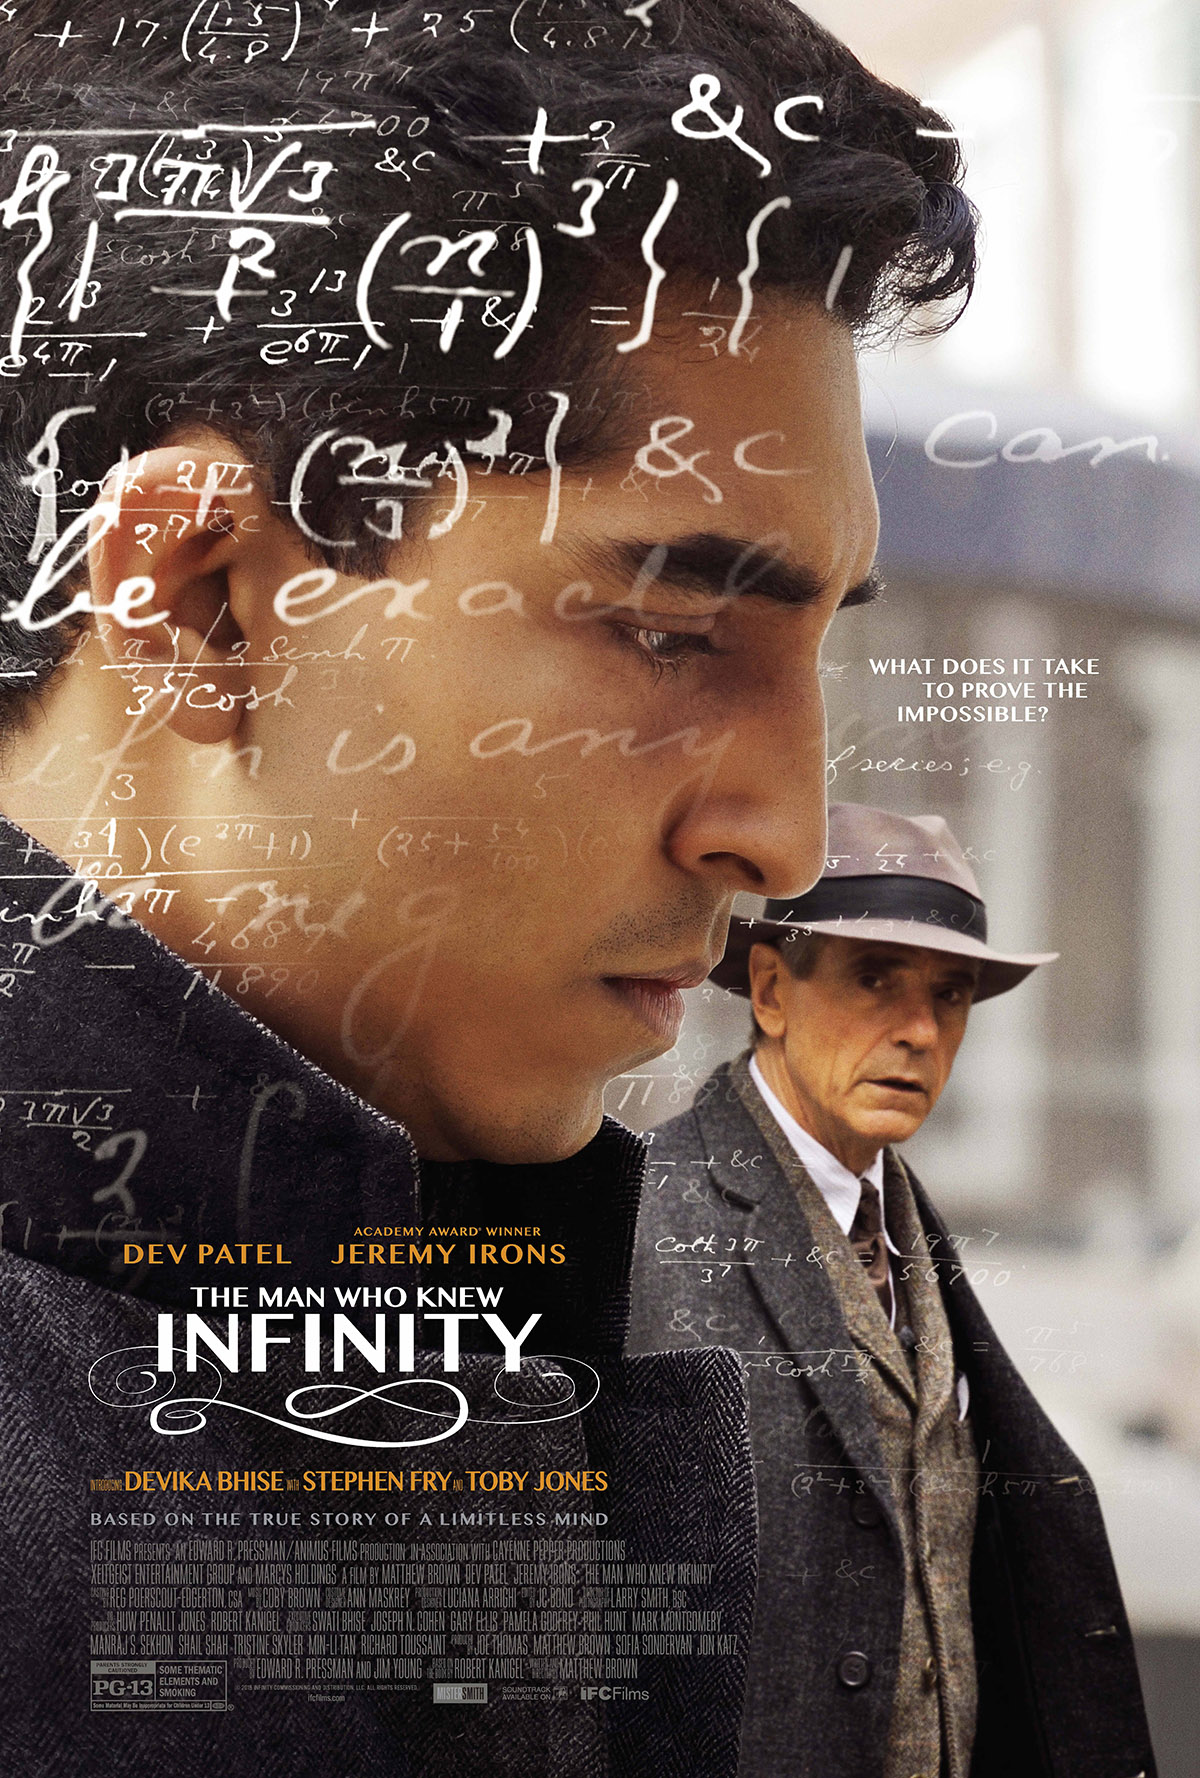 The Man Who Knew Infinity (2015) - IMDb